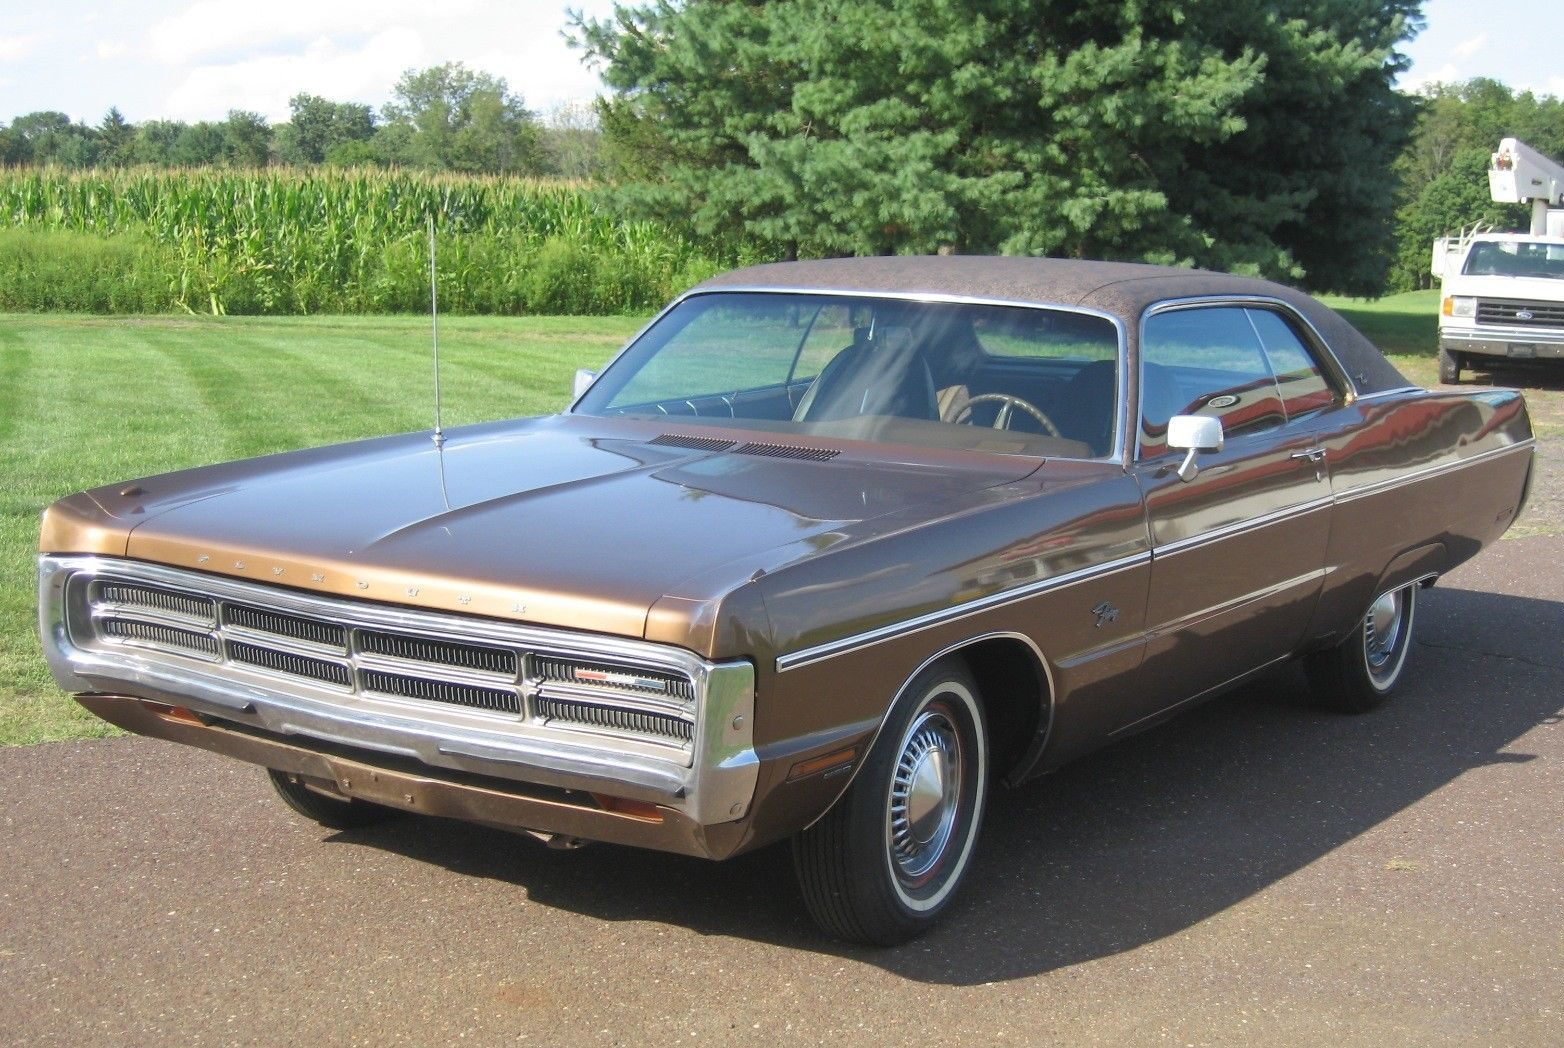 1970 plymouth sport fury gt ebay autos post - 1970 plymouth fury gran coupe ...